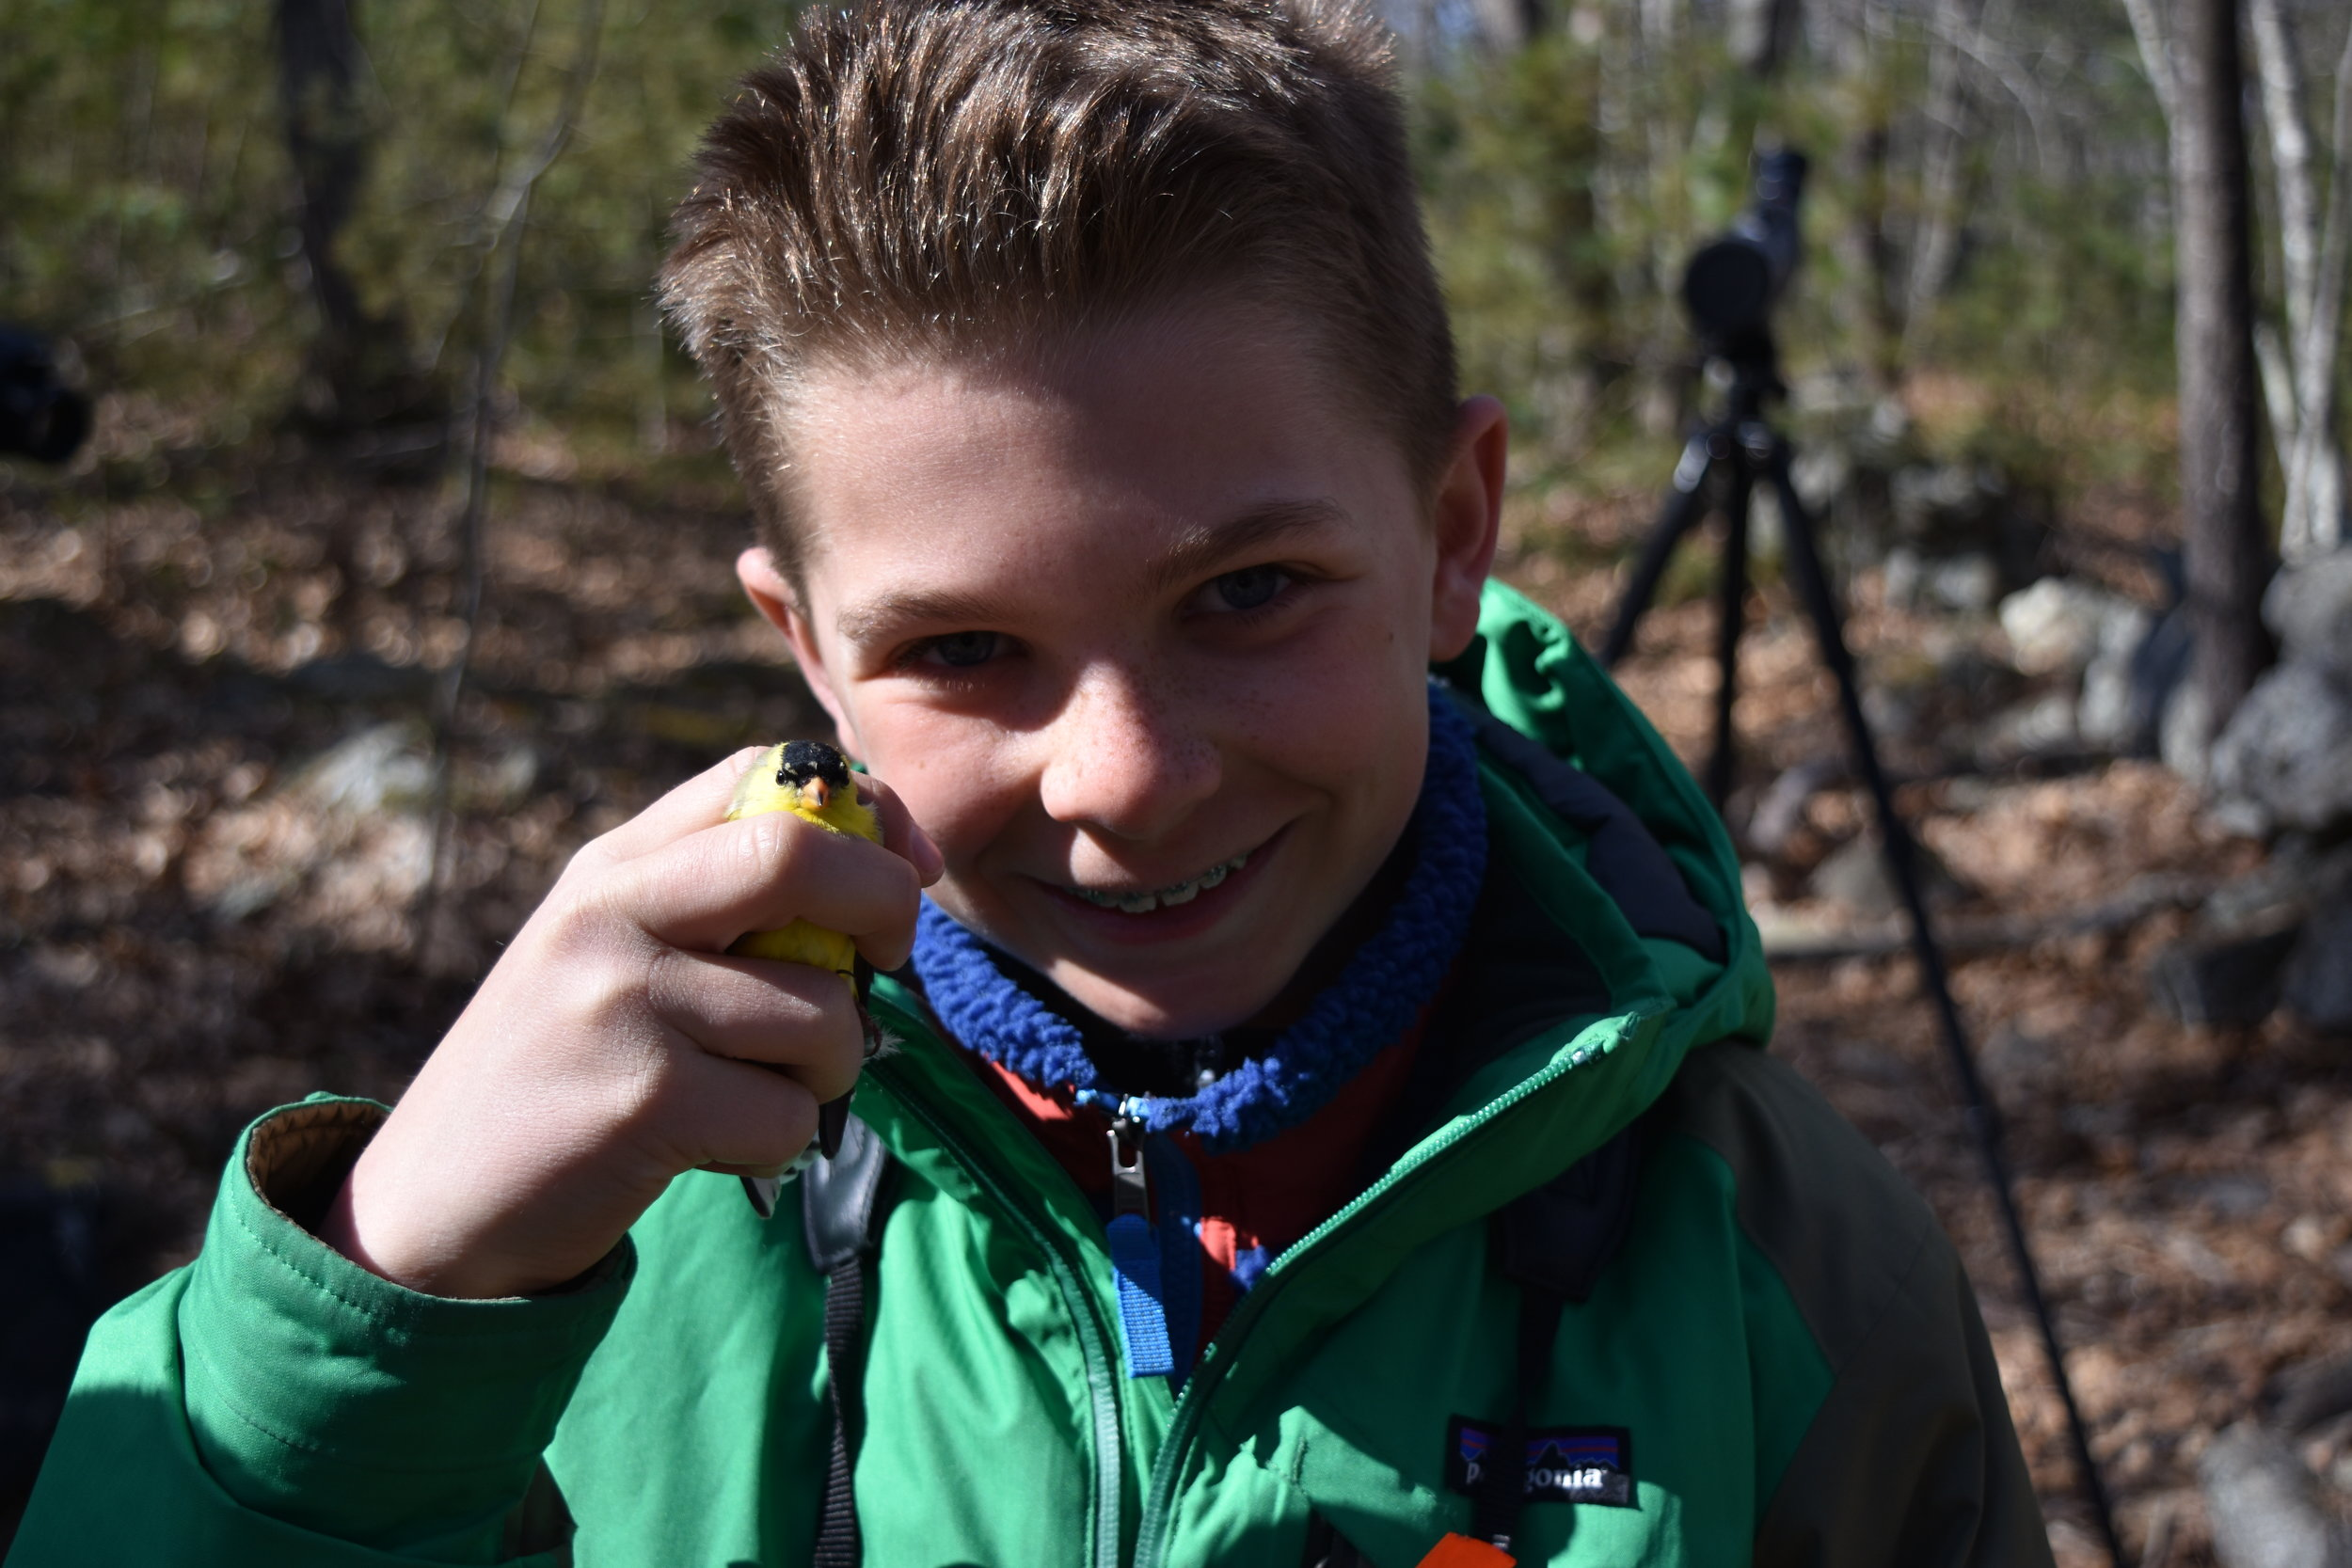 Ian showing his excitement for holding the one of the several goldfinches we banded